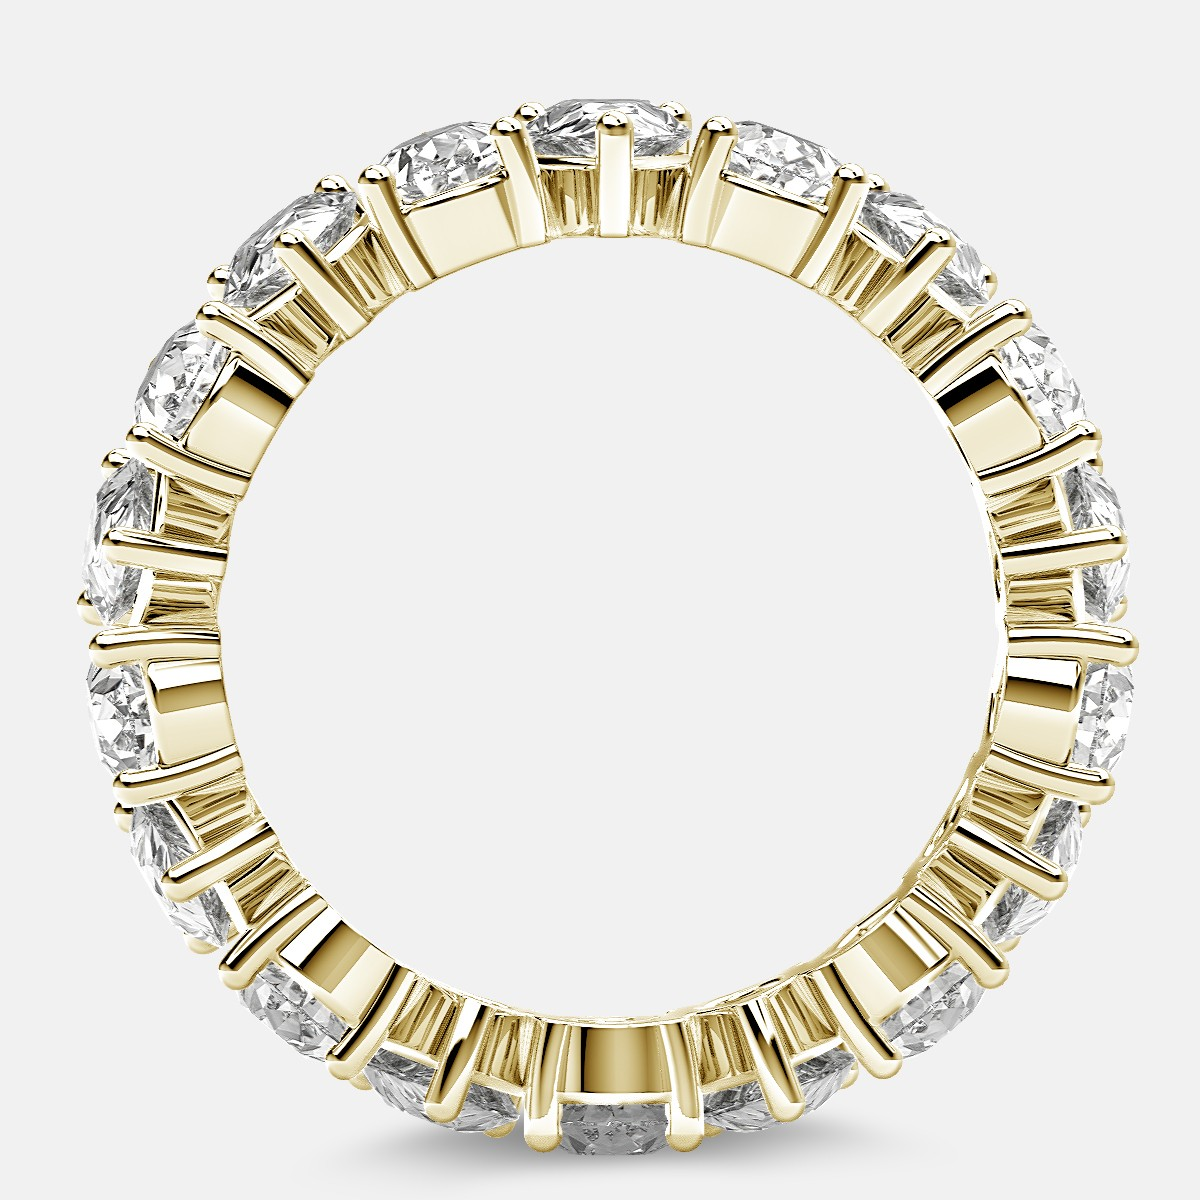 Prong Set Eternity Ring with Pear Shaped Diamonds in 18k Yellow Gold